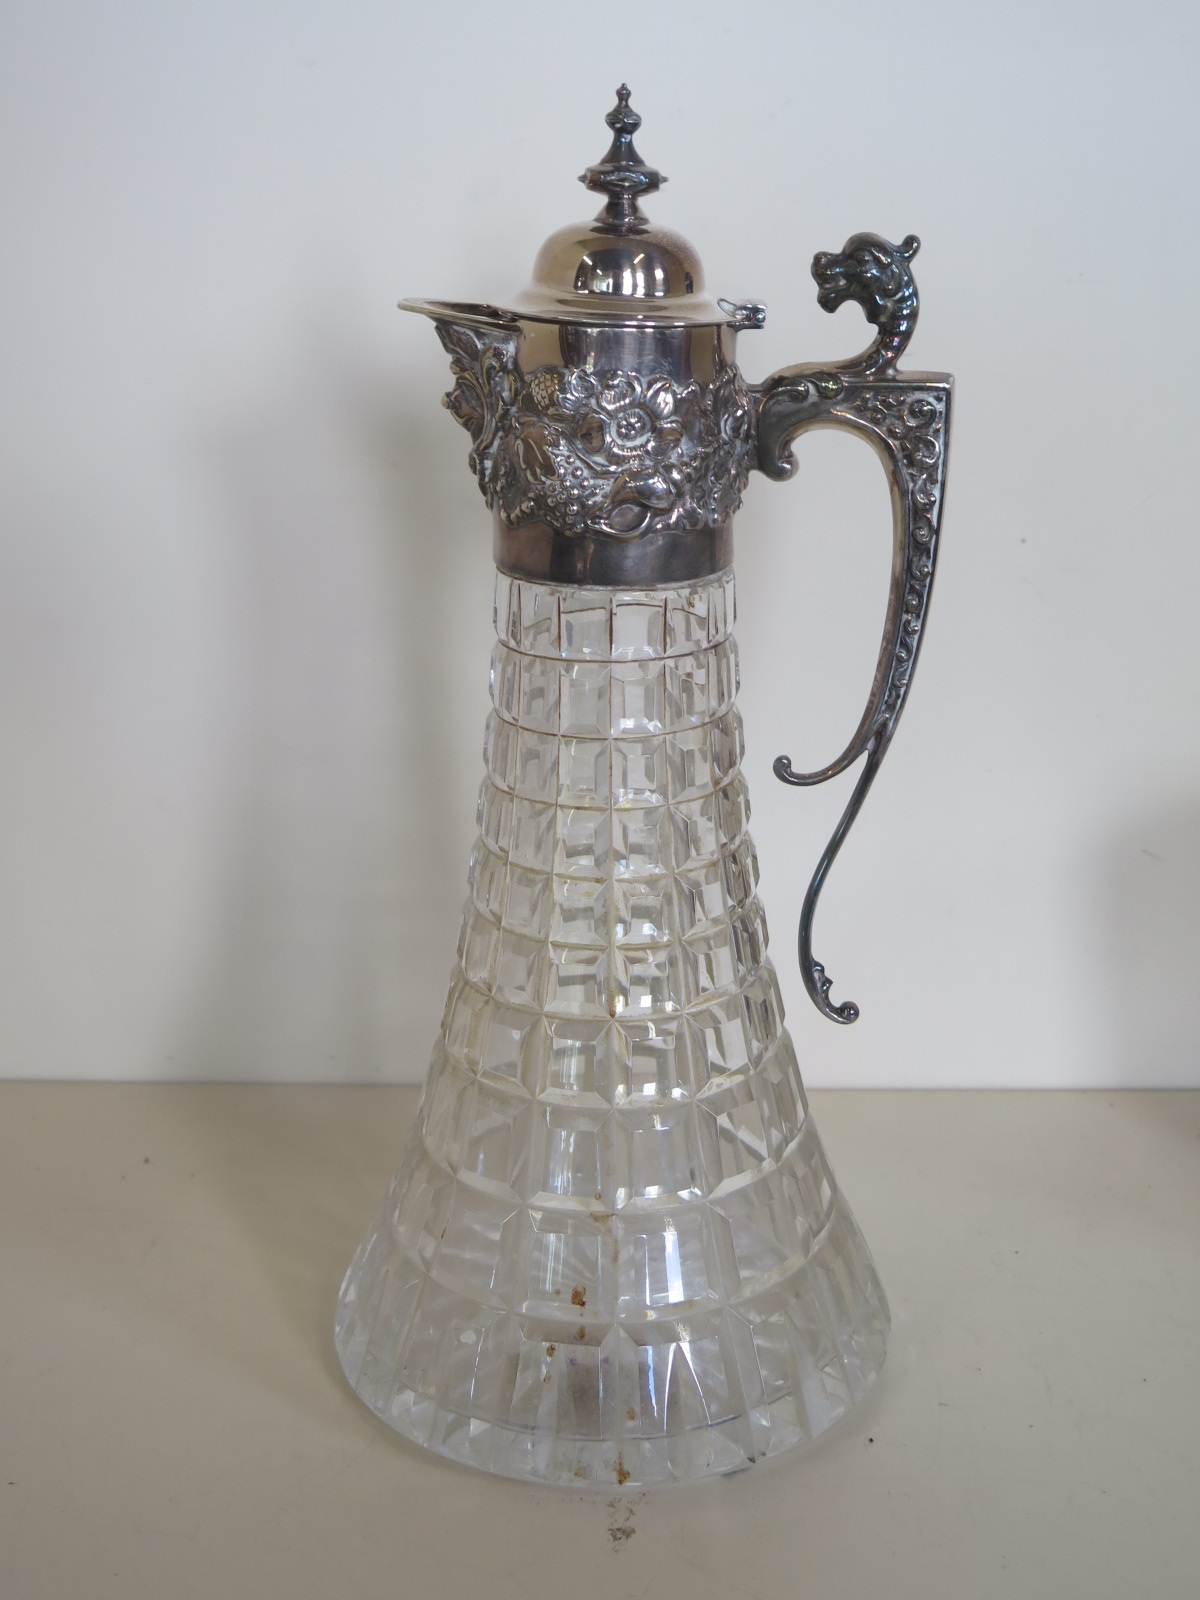 Lot 569 - A silver topped glass clarinet jug, Sheffield 1972, approx 31cm high, usage marks